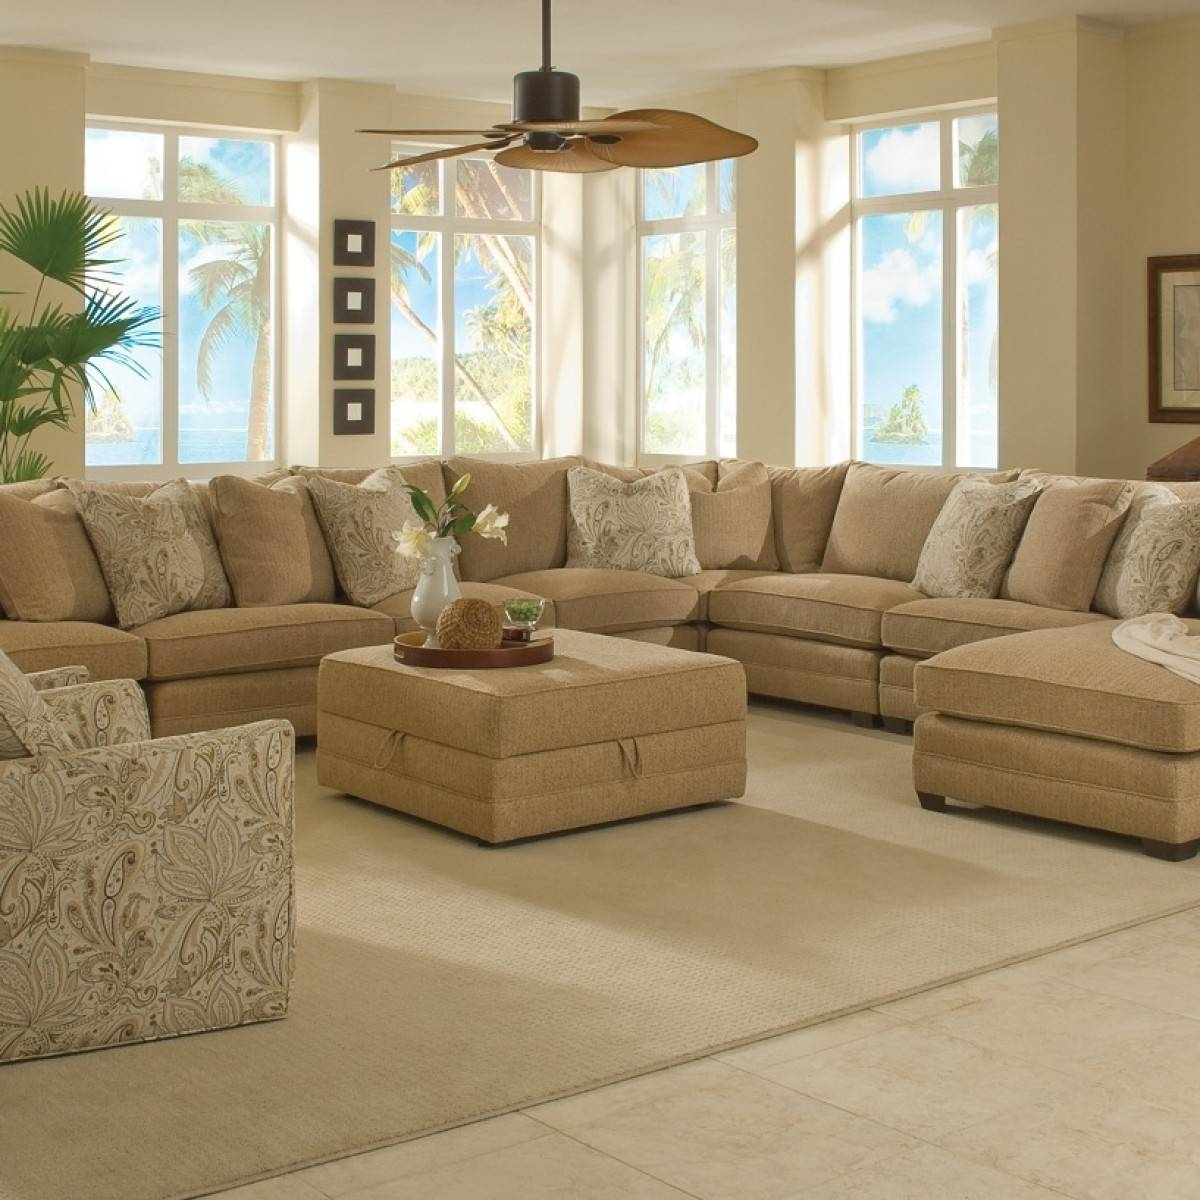 Deep Seat Sofa. Deep Seat Sofa 3. Deep Seat Sofa. Deep Seated intended for Deep Cushion Sofa (Image 5 of 16)